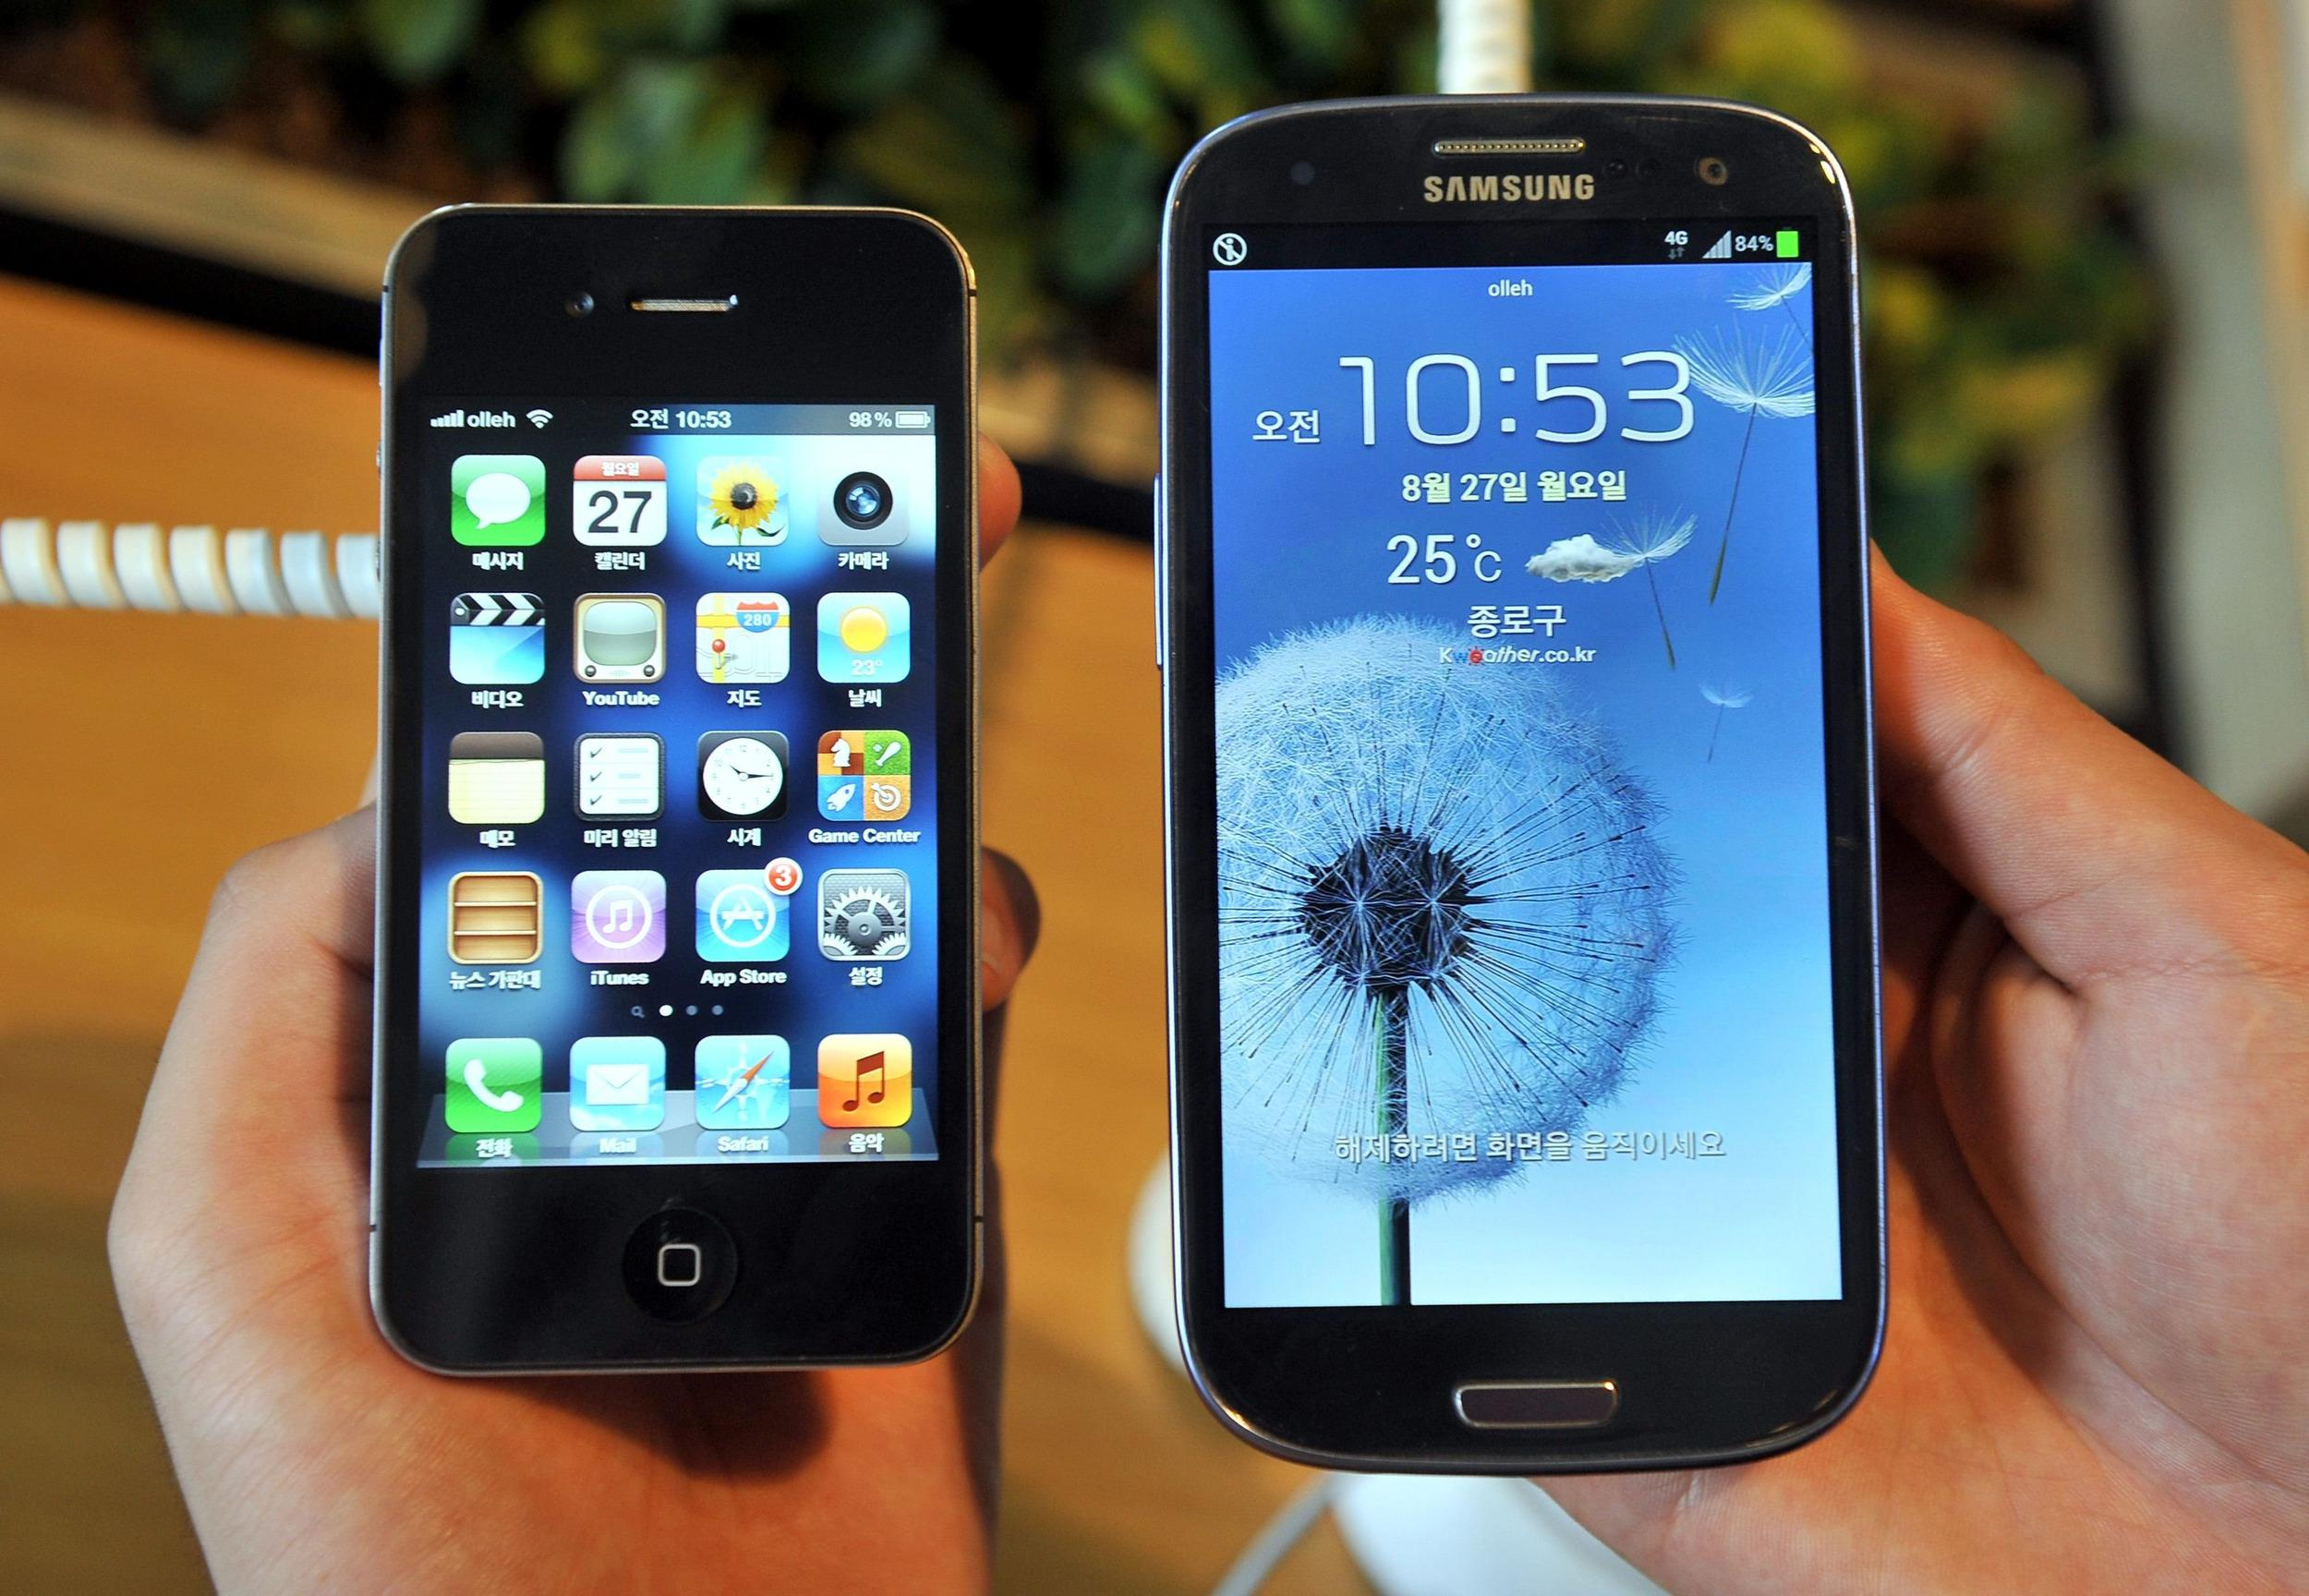 Samsung and Apple have agreed a truce in their worldwide patent war, but will still fight in U.S. courts.